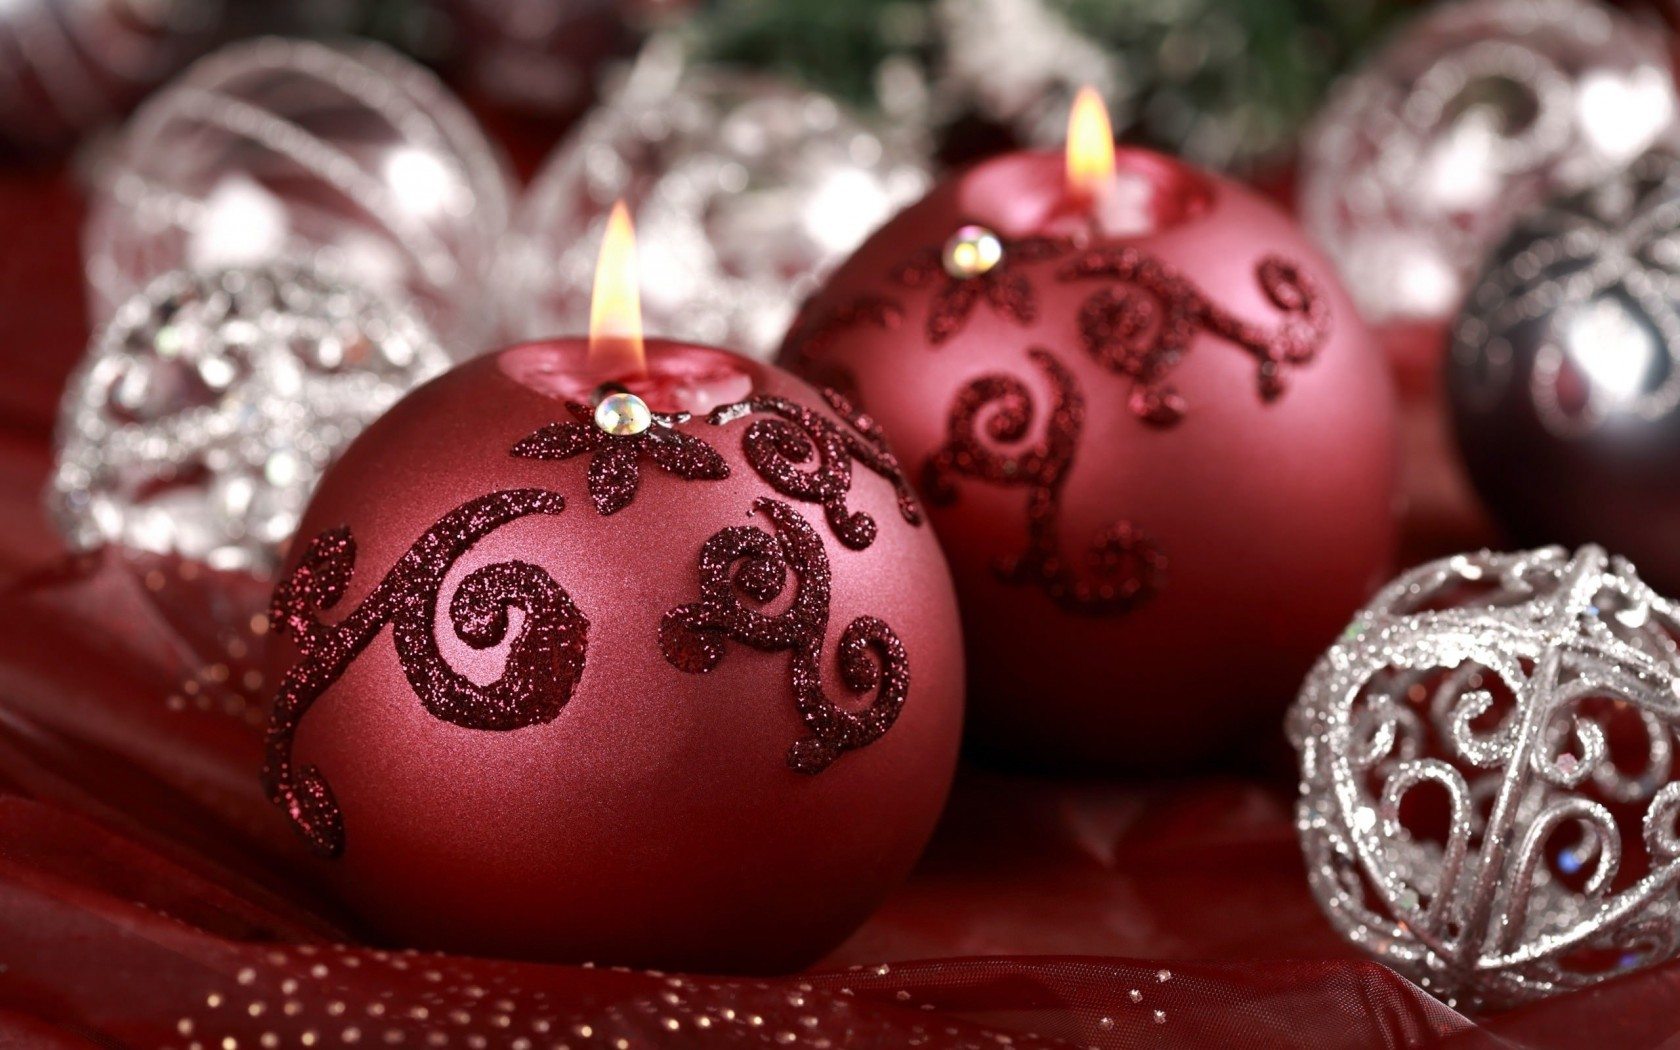 Red Christmas Ornament Ball Candles Wallpaper for Desktop 1680x1050